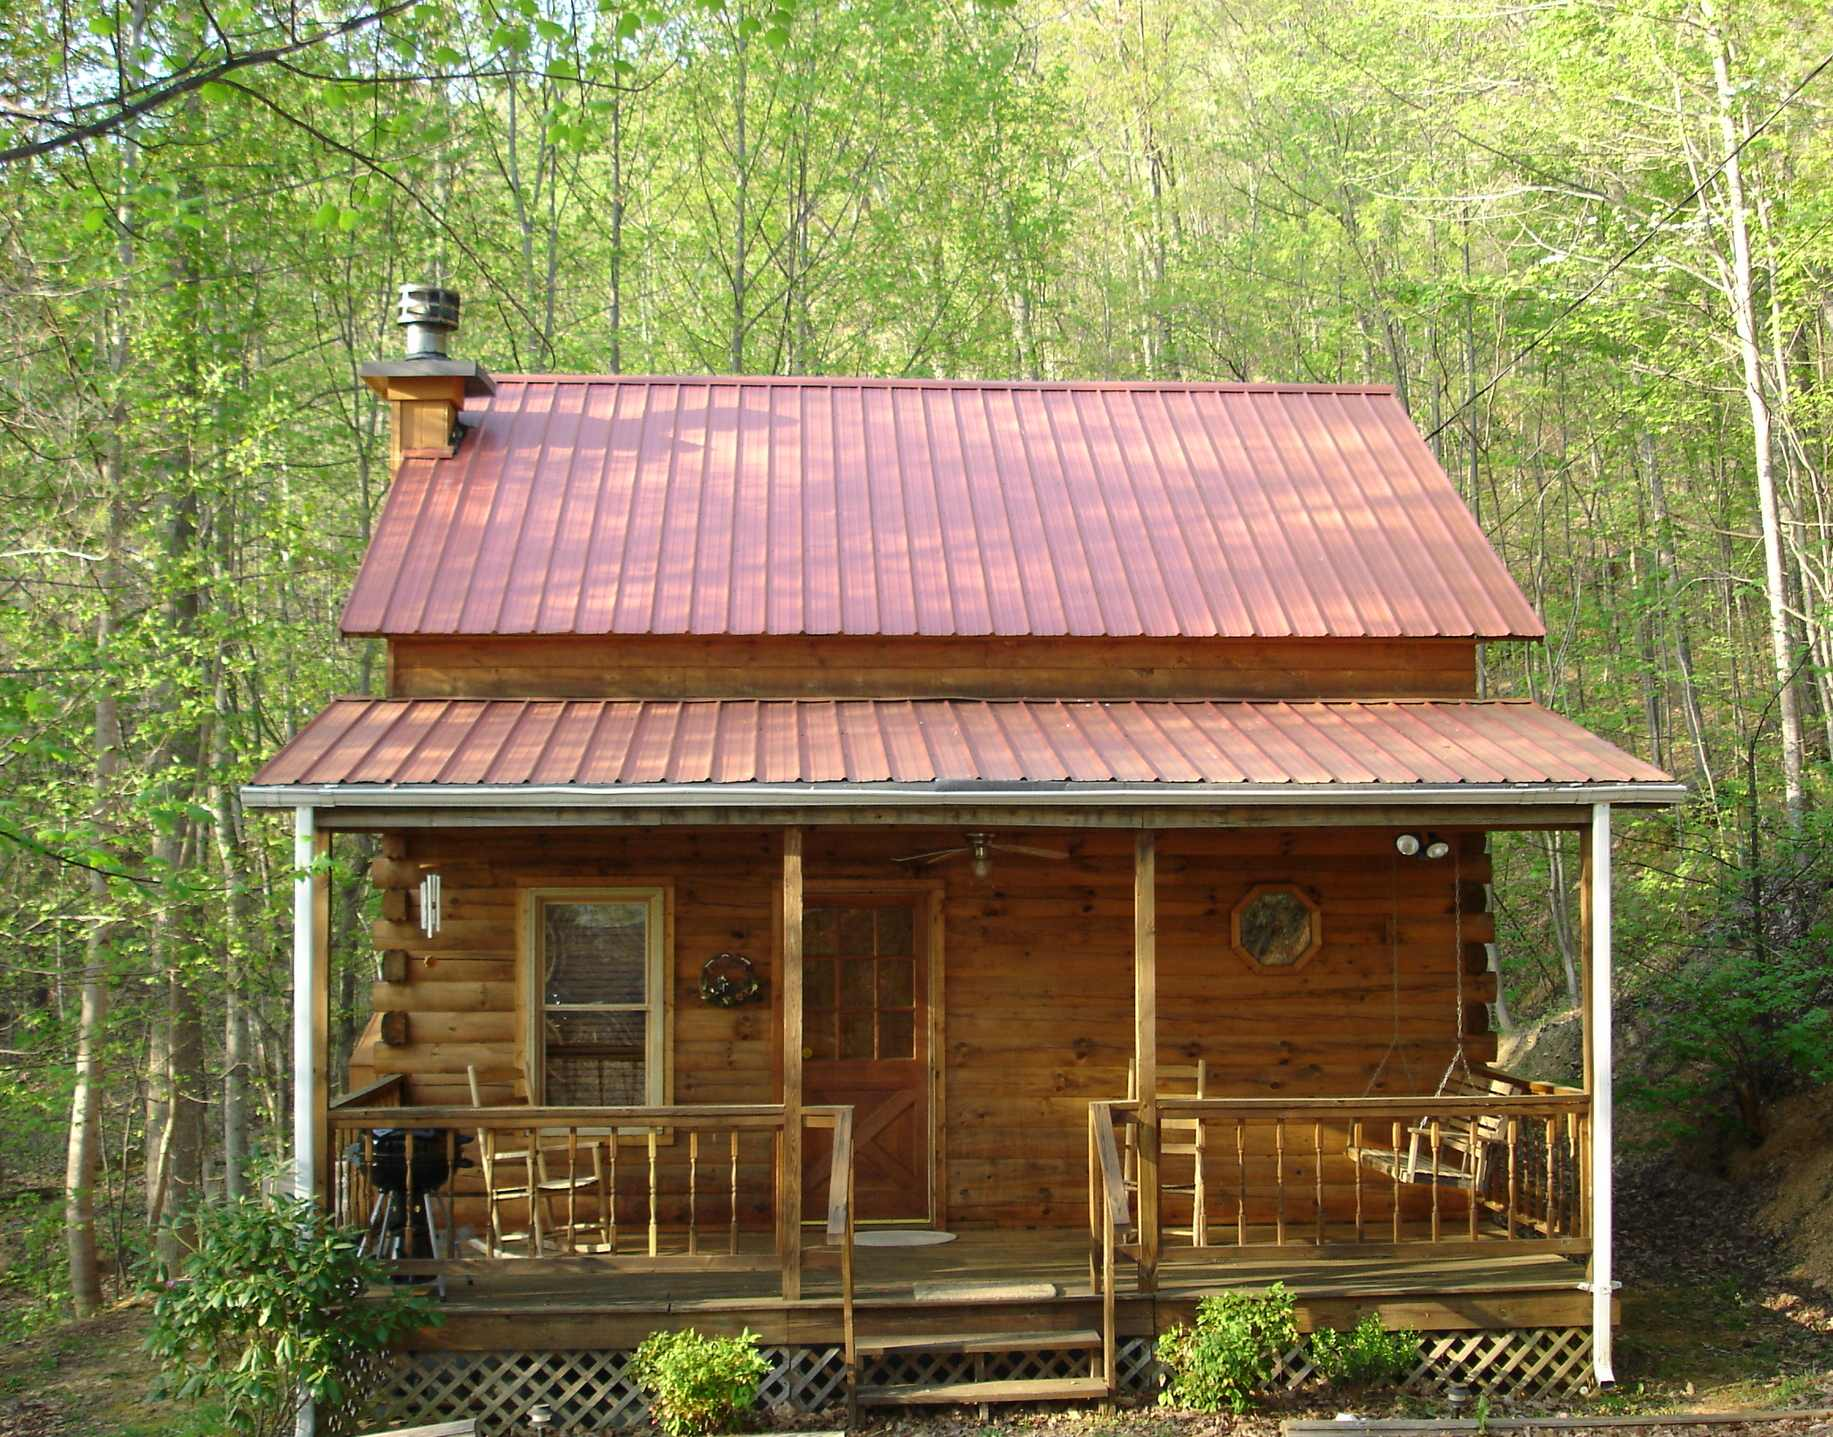 Rustic cabin plans small design and ideas for Rustic cabin designs